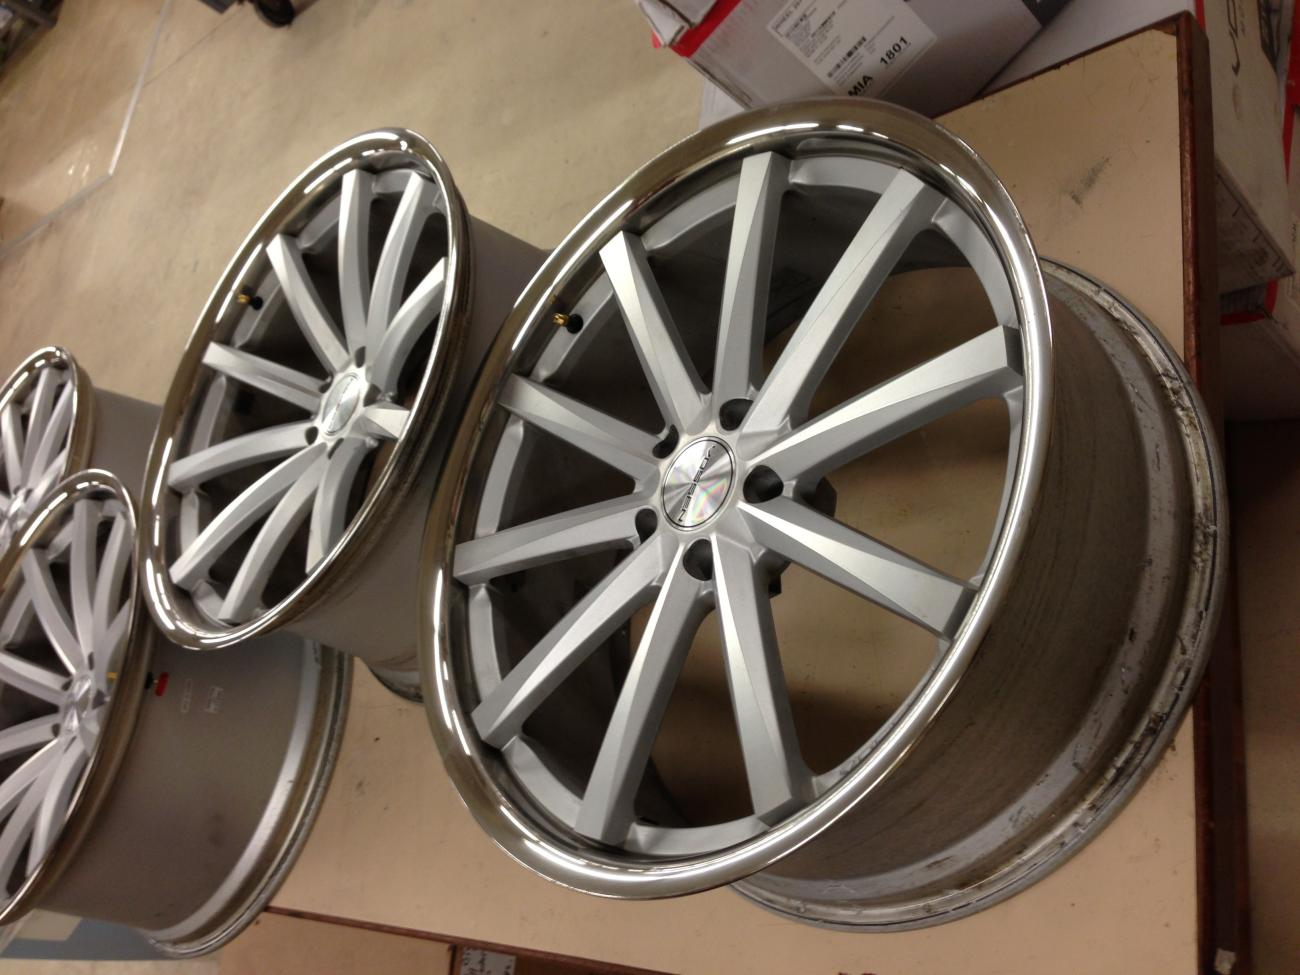 vossen rims for sale 22 39 s camaro5 chevy camaro forum camaro zl1 ss and v6 forums. Black Bedroom Furniture Sets. Home Design Ideas